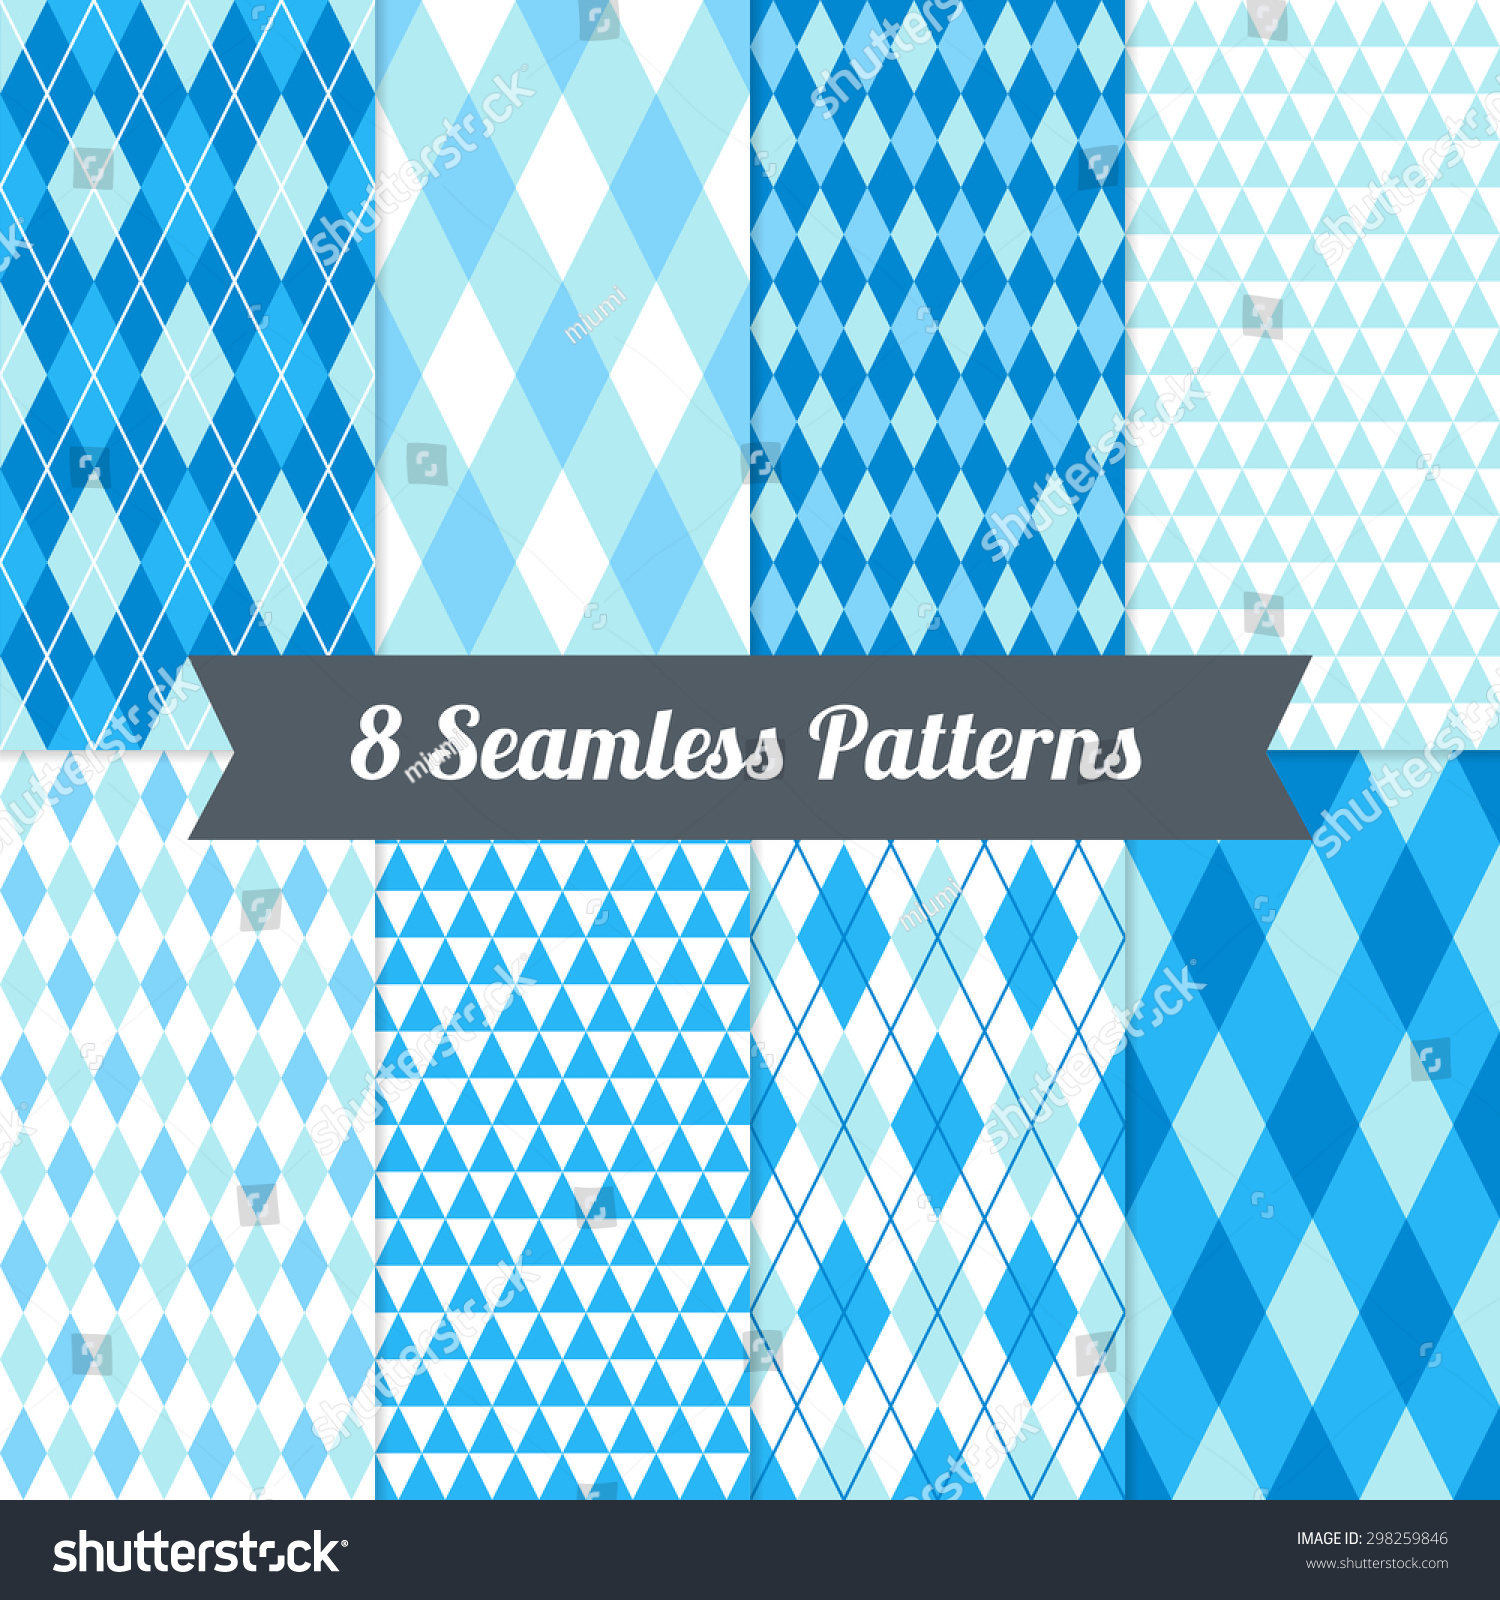 Pics photos merry christmas argyle twitter backgrounds - Set Of Triangles Argyle And Harlequin Seamless Patterns In Blue Light Blue Cyan